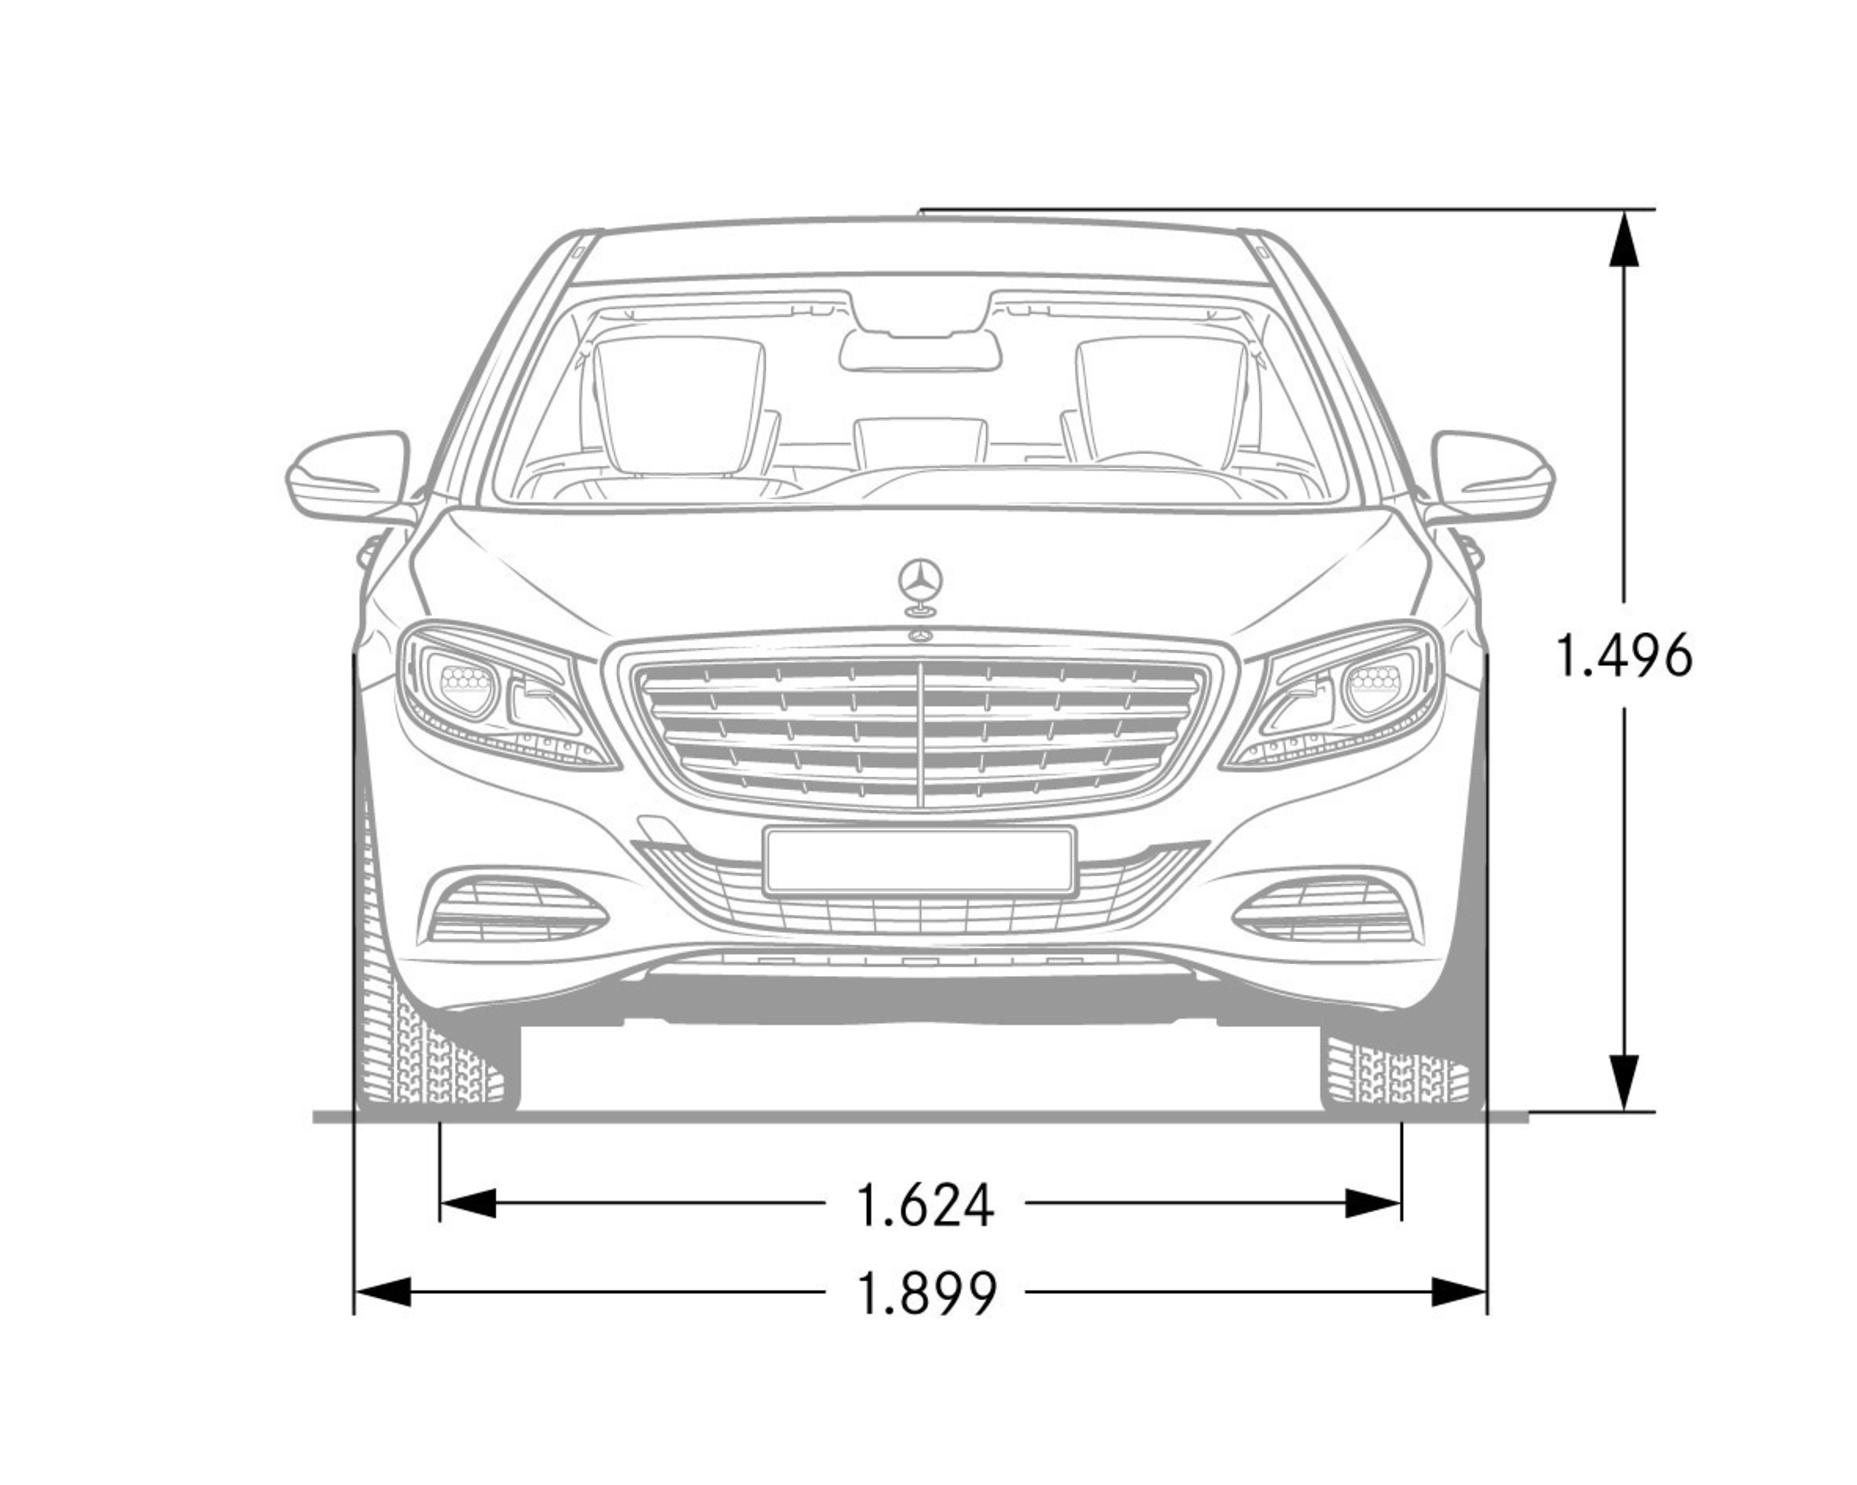 Mercedes Benz S Class Model Range likewise Features besides Specifications moreover Recessed Spot Light together with Labgear Tv Aerial High Gain Digital. on smart car specifications